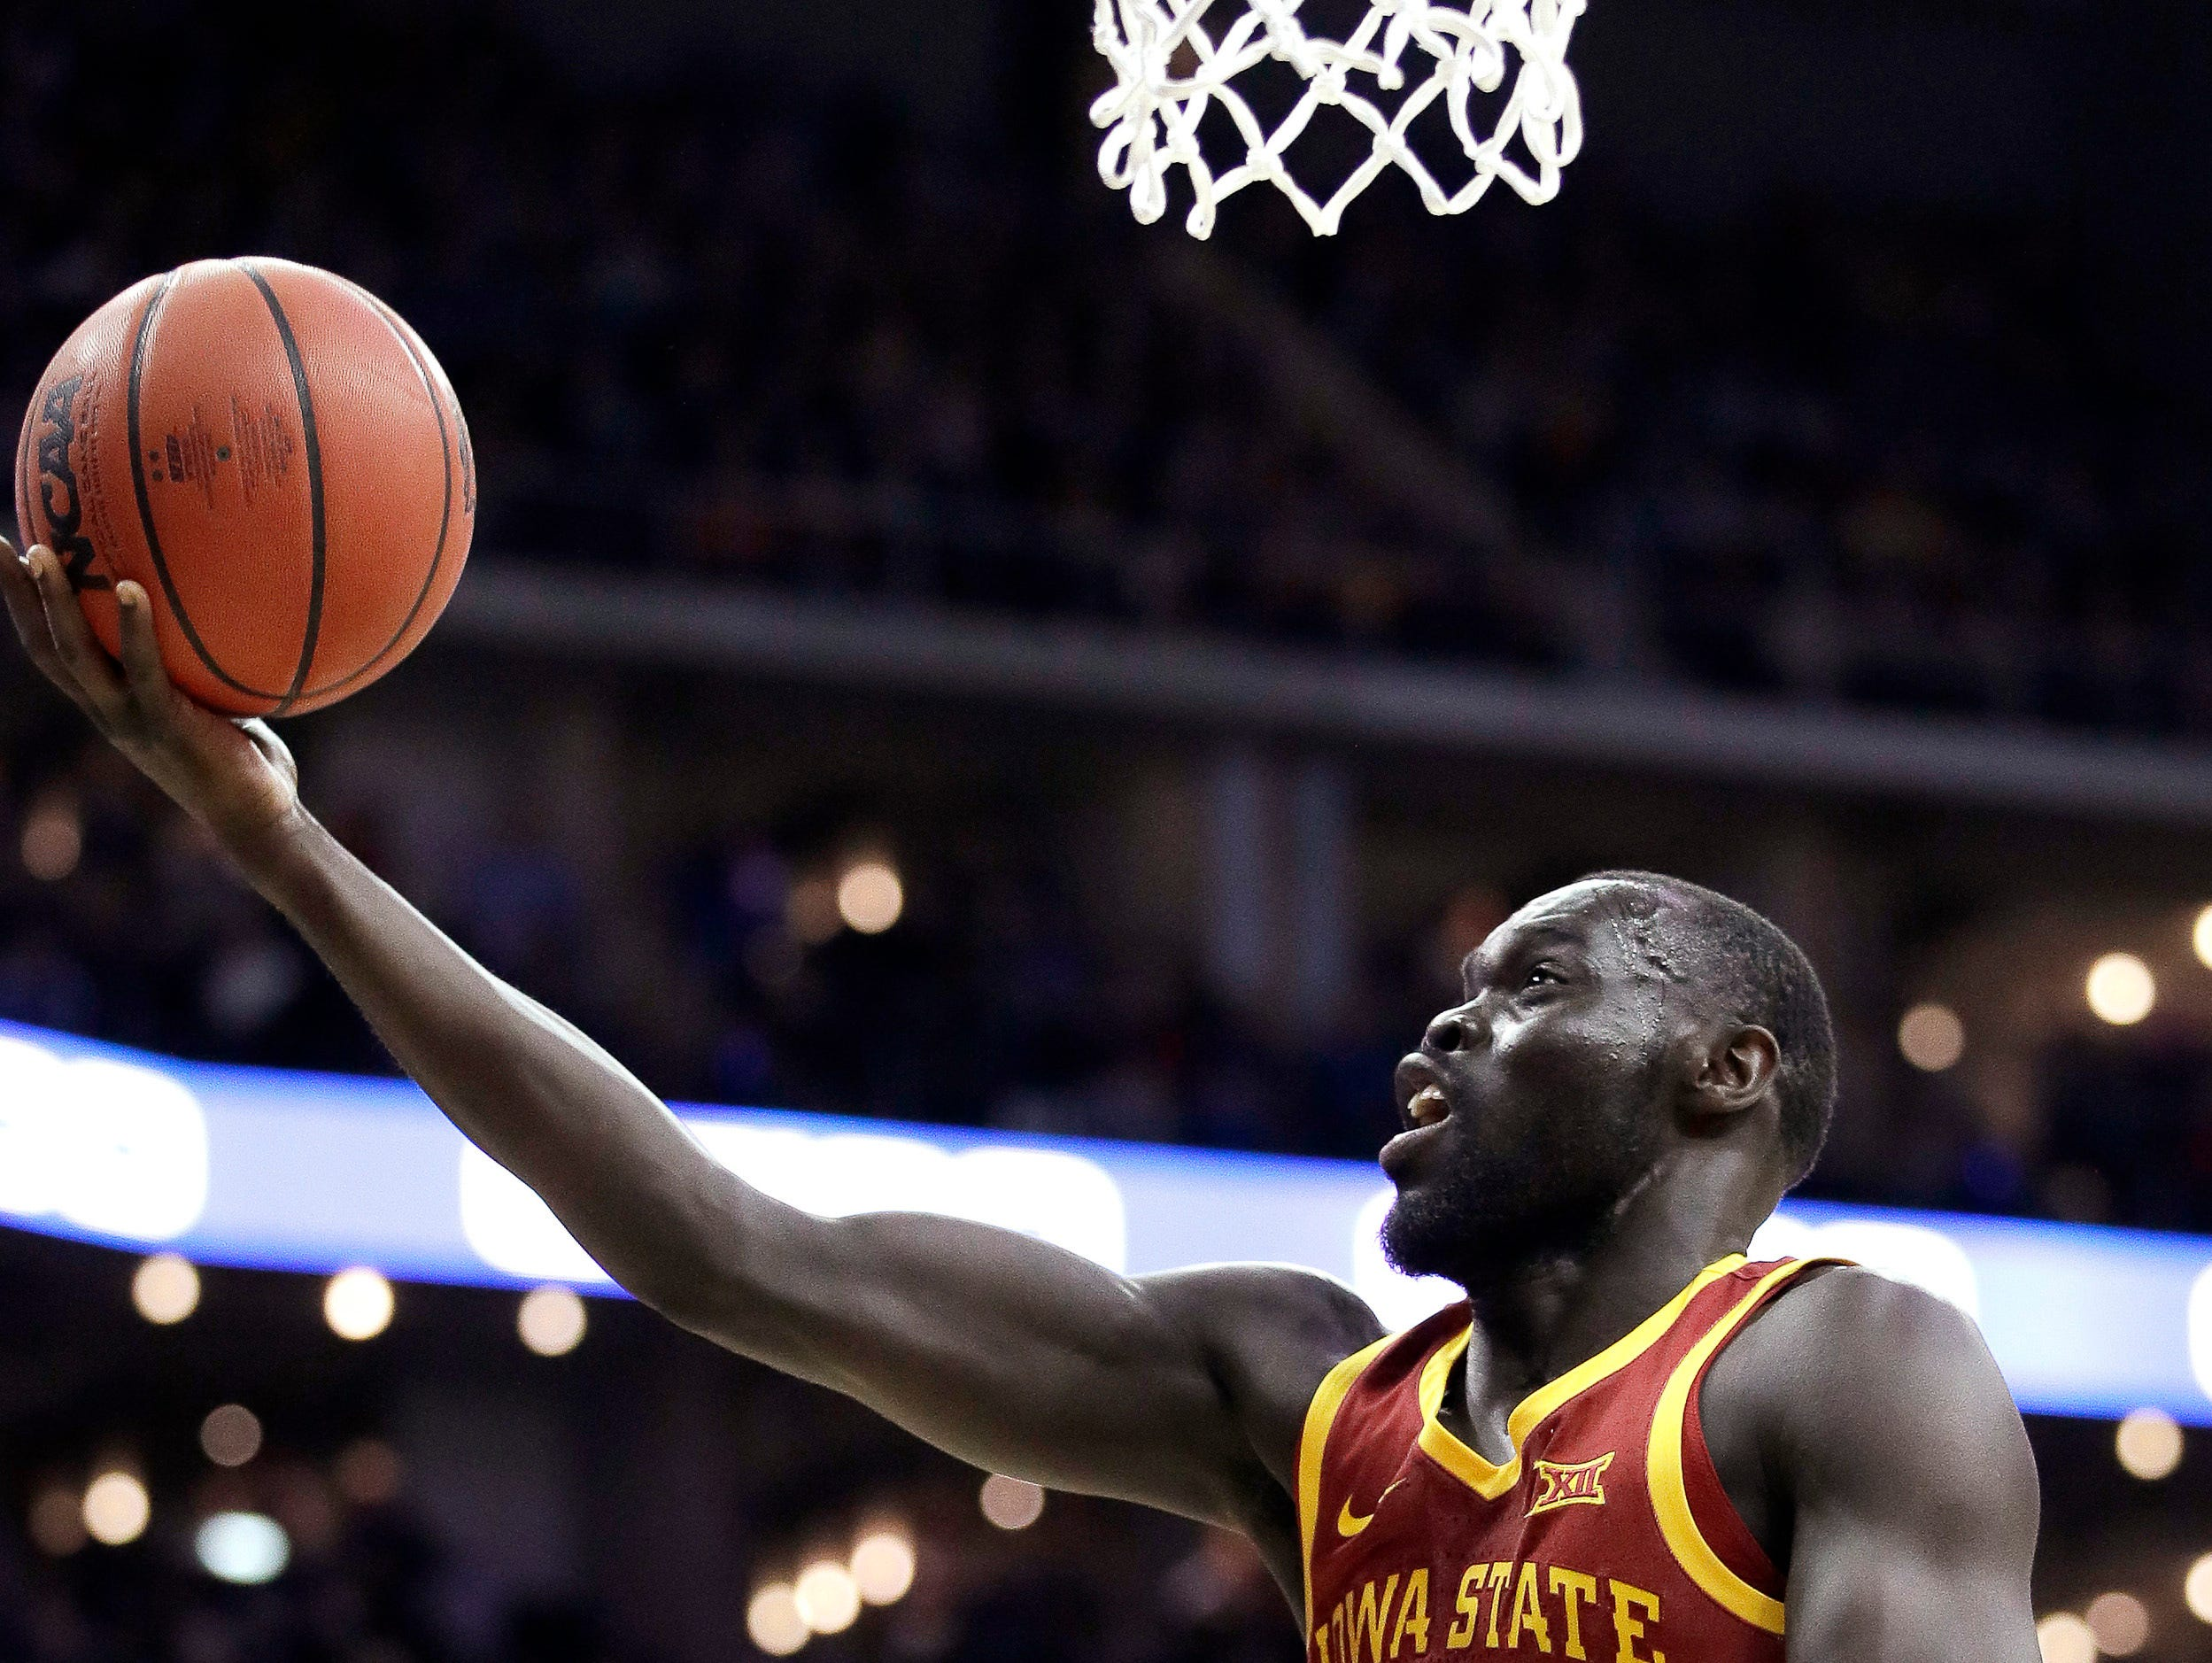 Iowa State's Marial Shayok (3) shoots over Kansas State's Xavier Sneed (20) during the first half of an NCAA college basketball game in the Big 12 men's tournament Friday, March 15, 2019, in Kansas City, Mo. (AP Photo/Charlie Riedel)